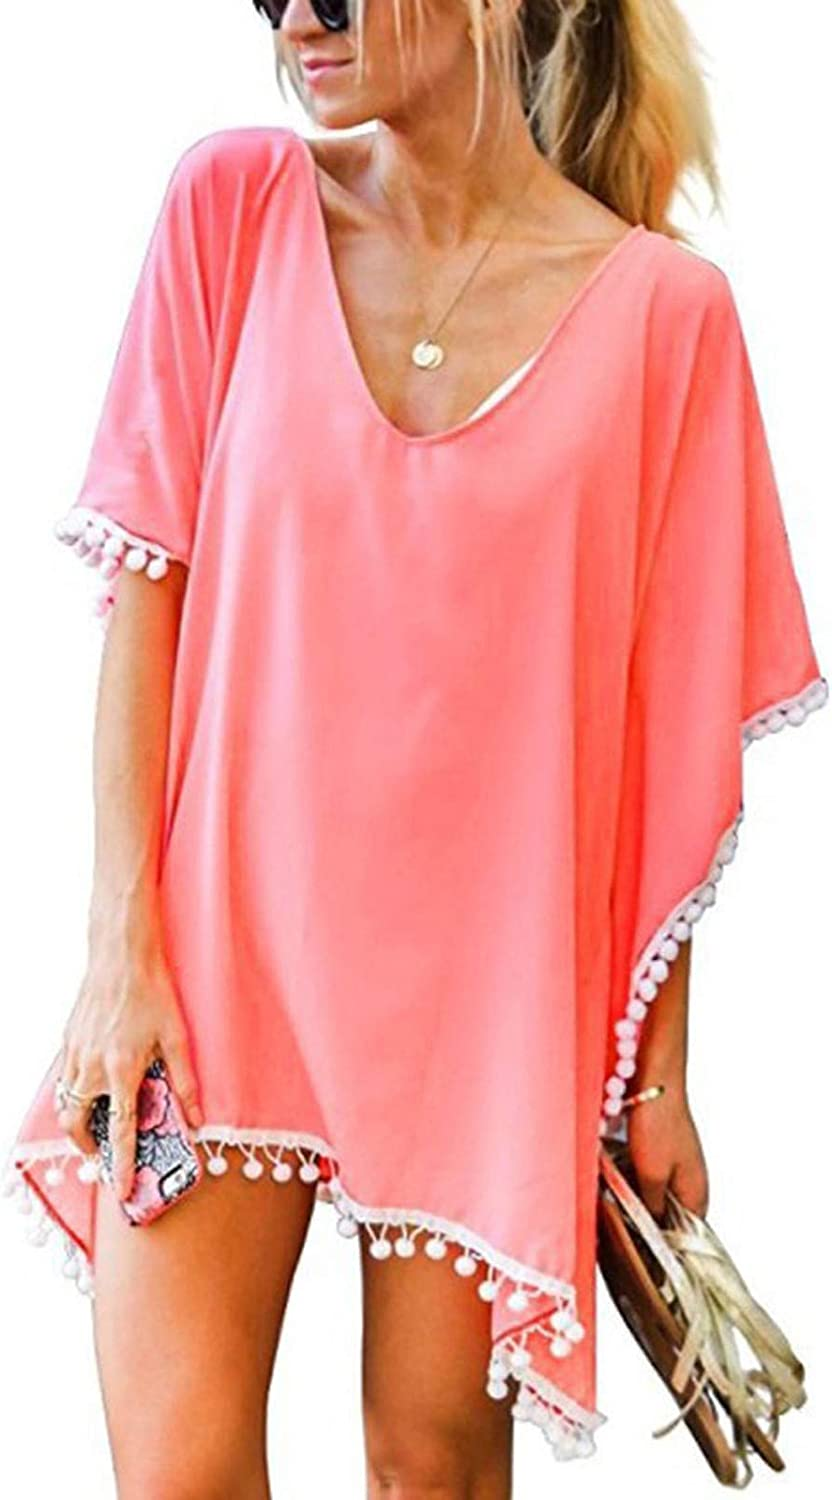 Summer Bathing Suit Cover Up for Women, Kcocoo Sexy V Neck Swimsuit Cover Ups Beach Bikini Tunic Tops Swimsuit Wraps